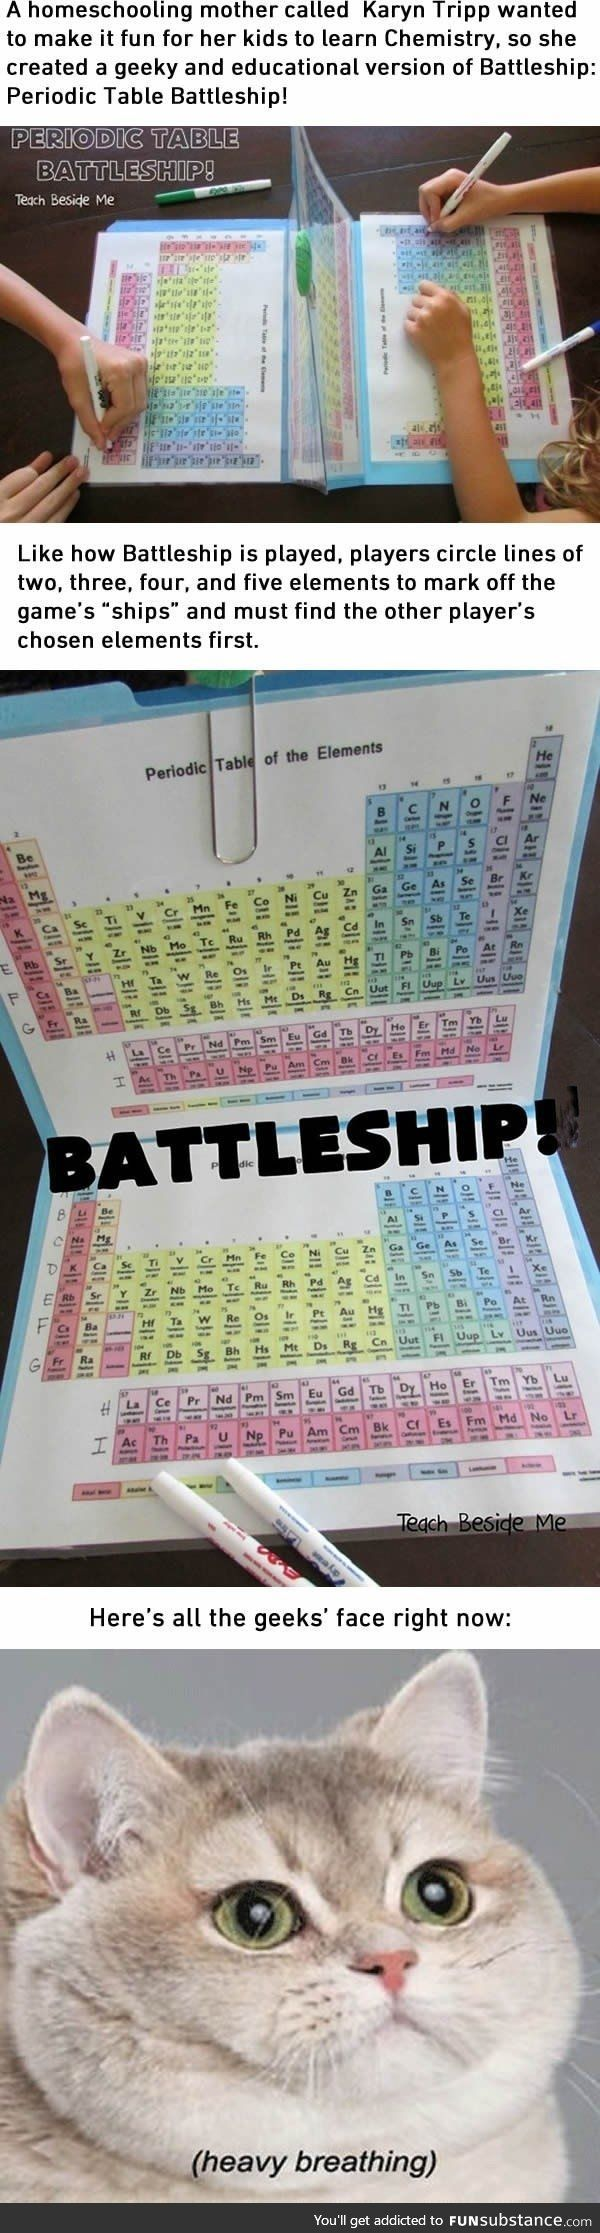 How to love chemistry more with this periodic table battleship how to love chemistry more with this periodic table battleship gamestrikefo Image collections